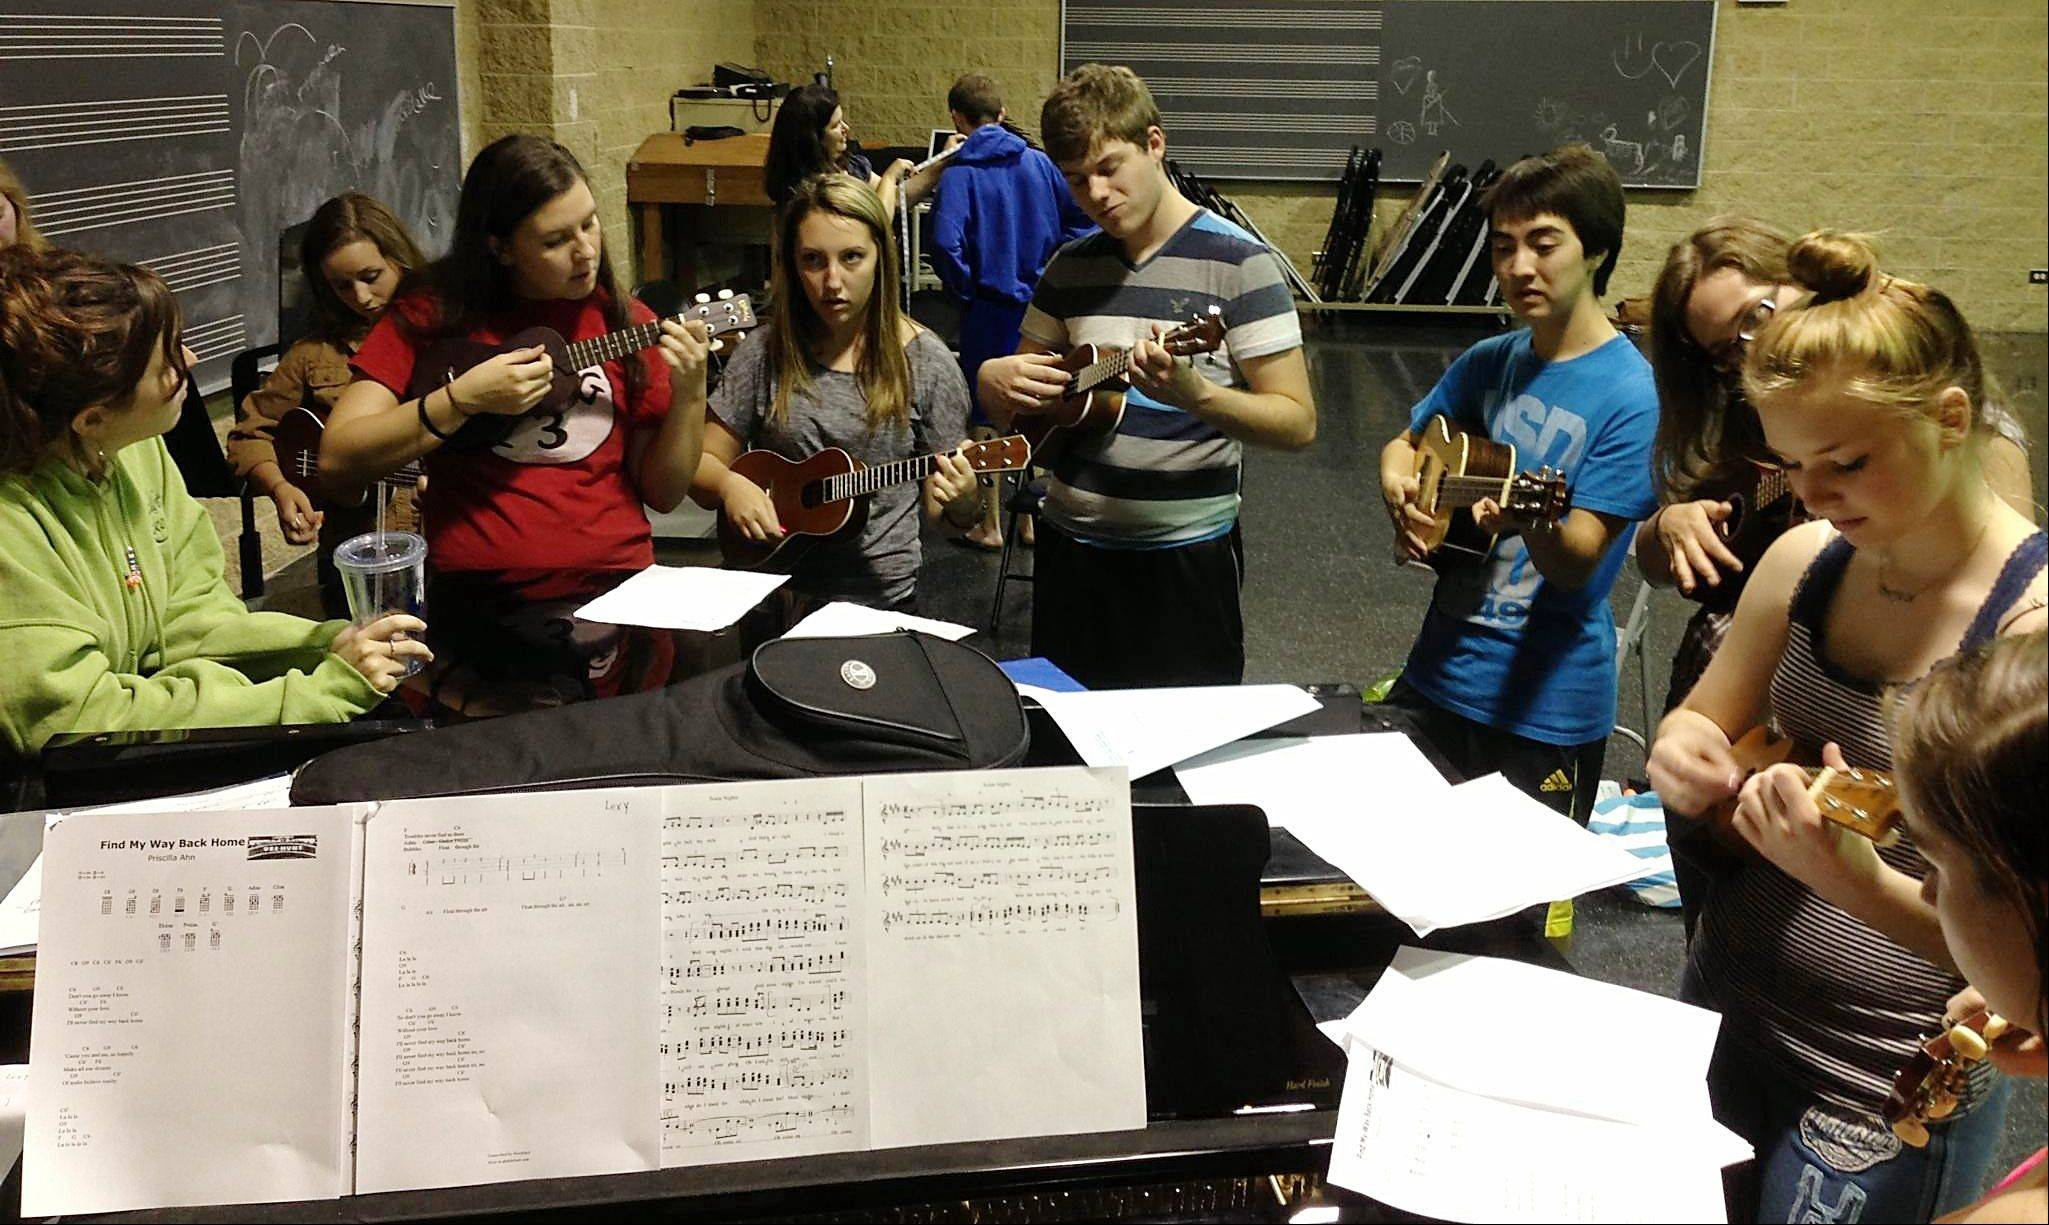 """iSing"" cast members rehearse a ukulele scene. From left are Izzy Romano, Mary Grace Martens, Taylor Edwards, Cameron Coffland, Ben Joyce, Logan Moring and Maddie Hayes."